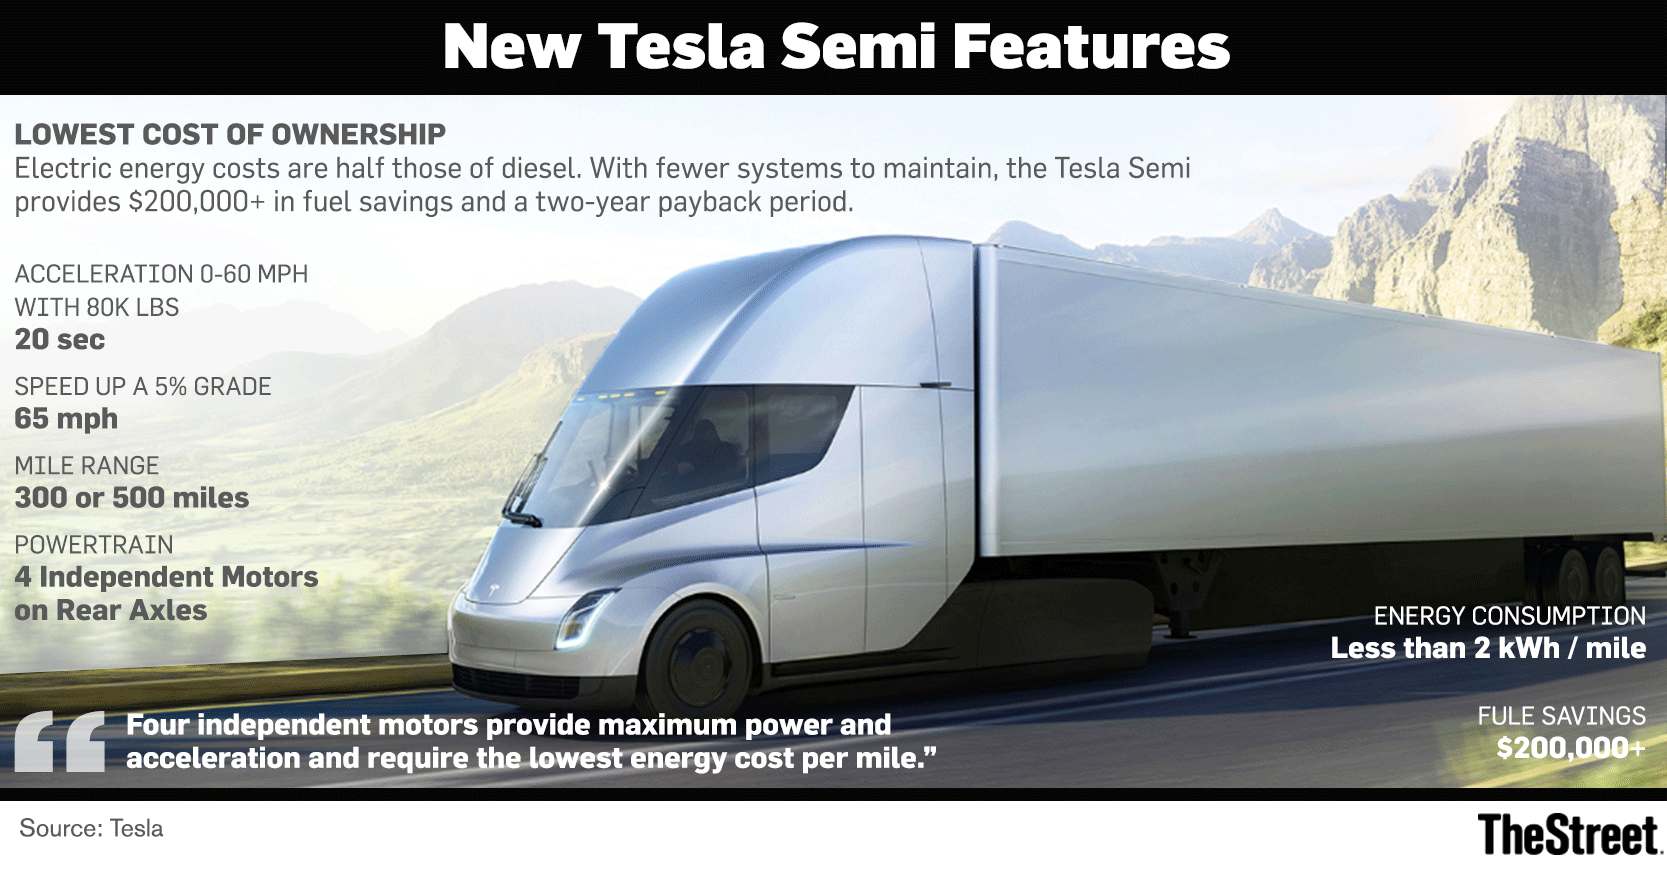 Tesla's new Semi truck recharges almost entirely in 30 minutes.